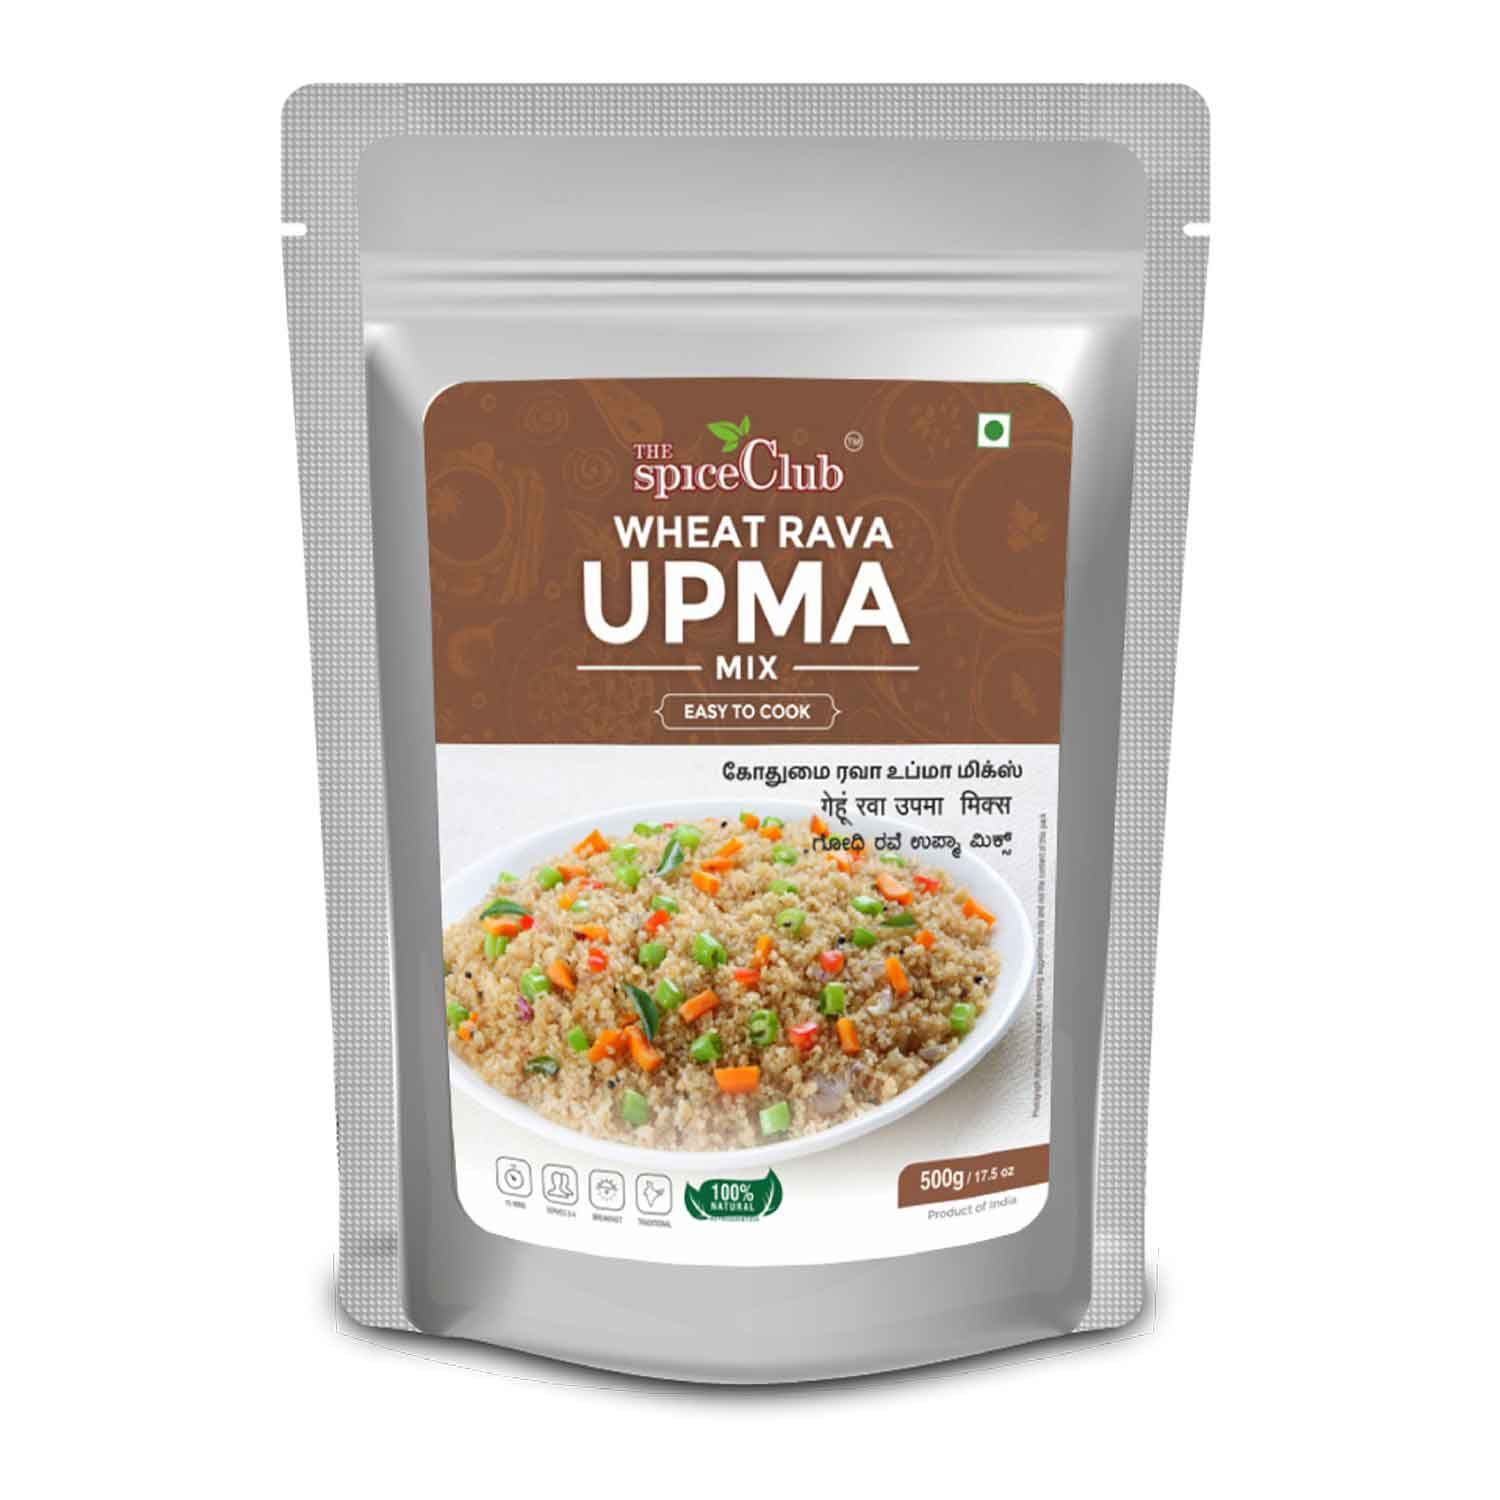 Wheat Rava Upma mix